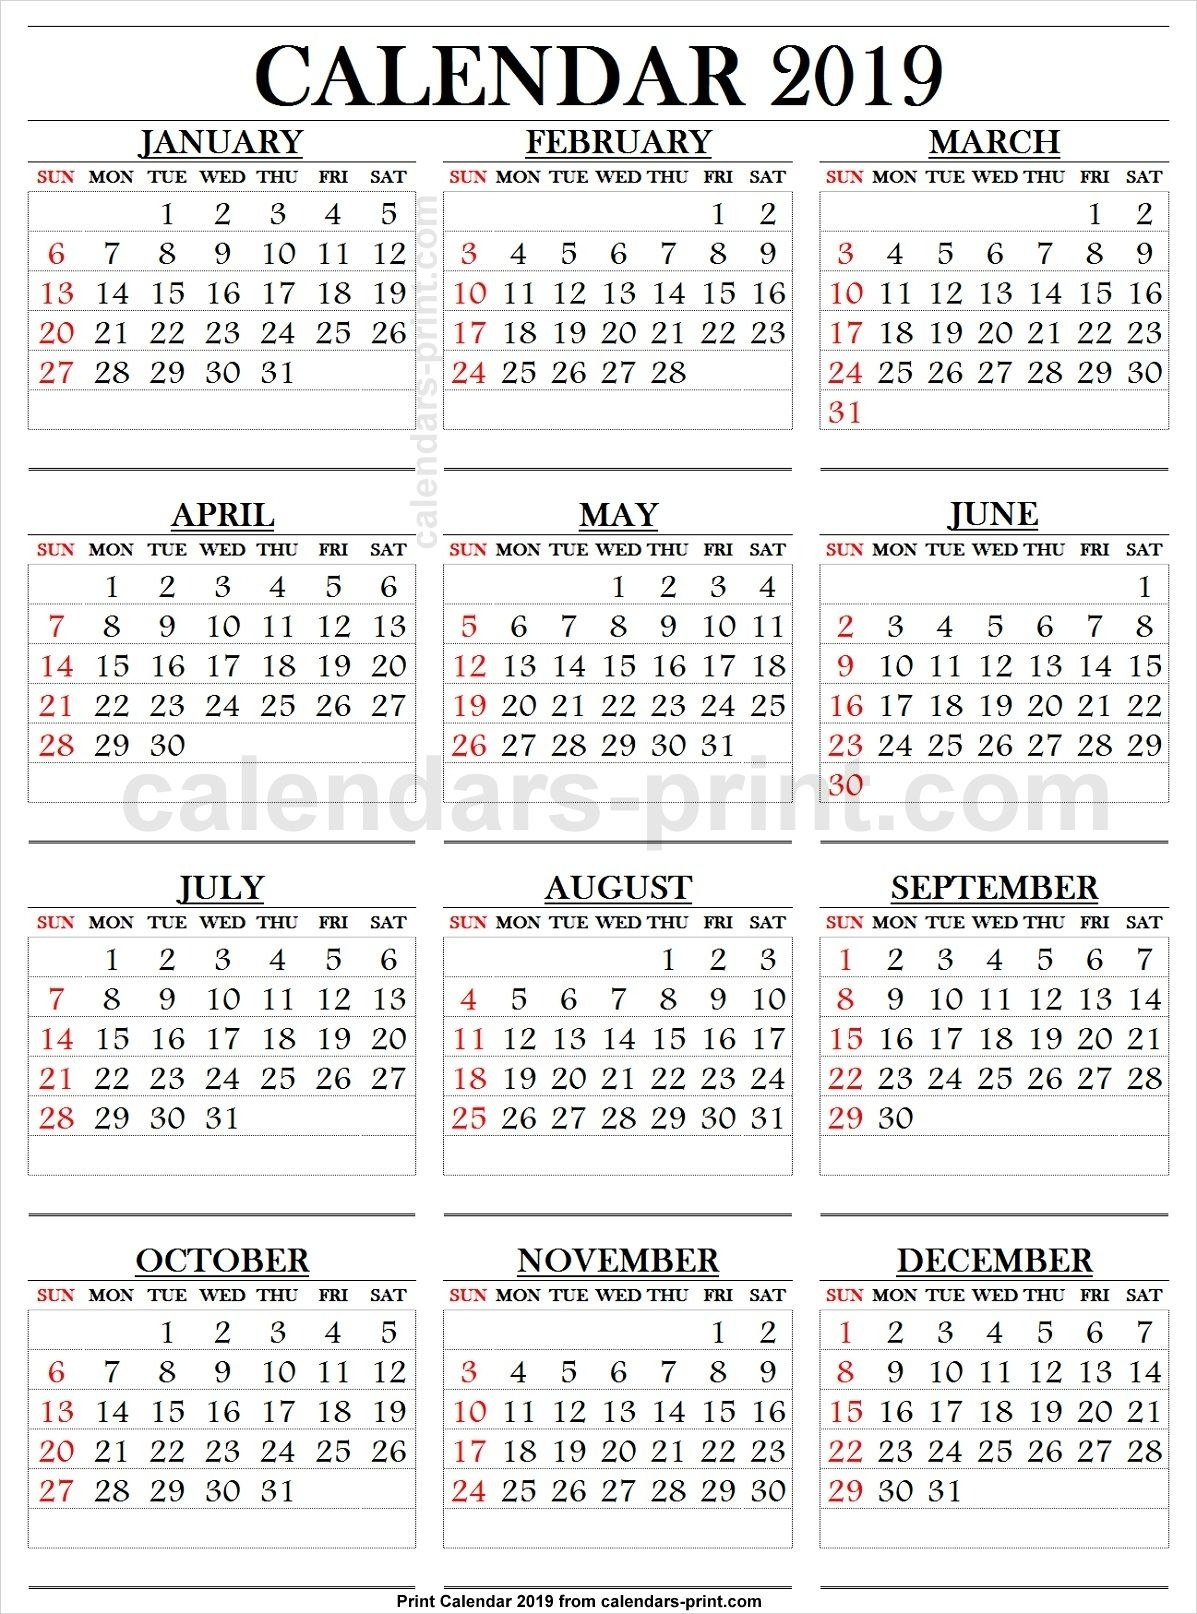 2019 Calendar Large Numbers | 2019 Calendar, Calendar 2019 with Large Printable Numbers 1 31